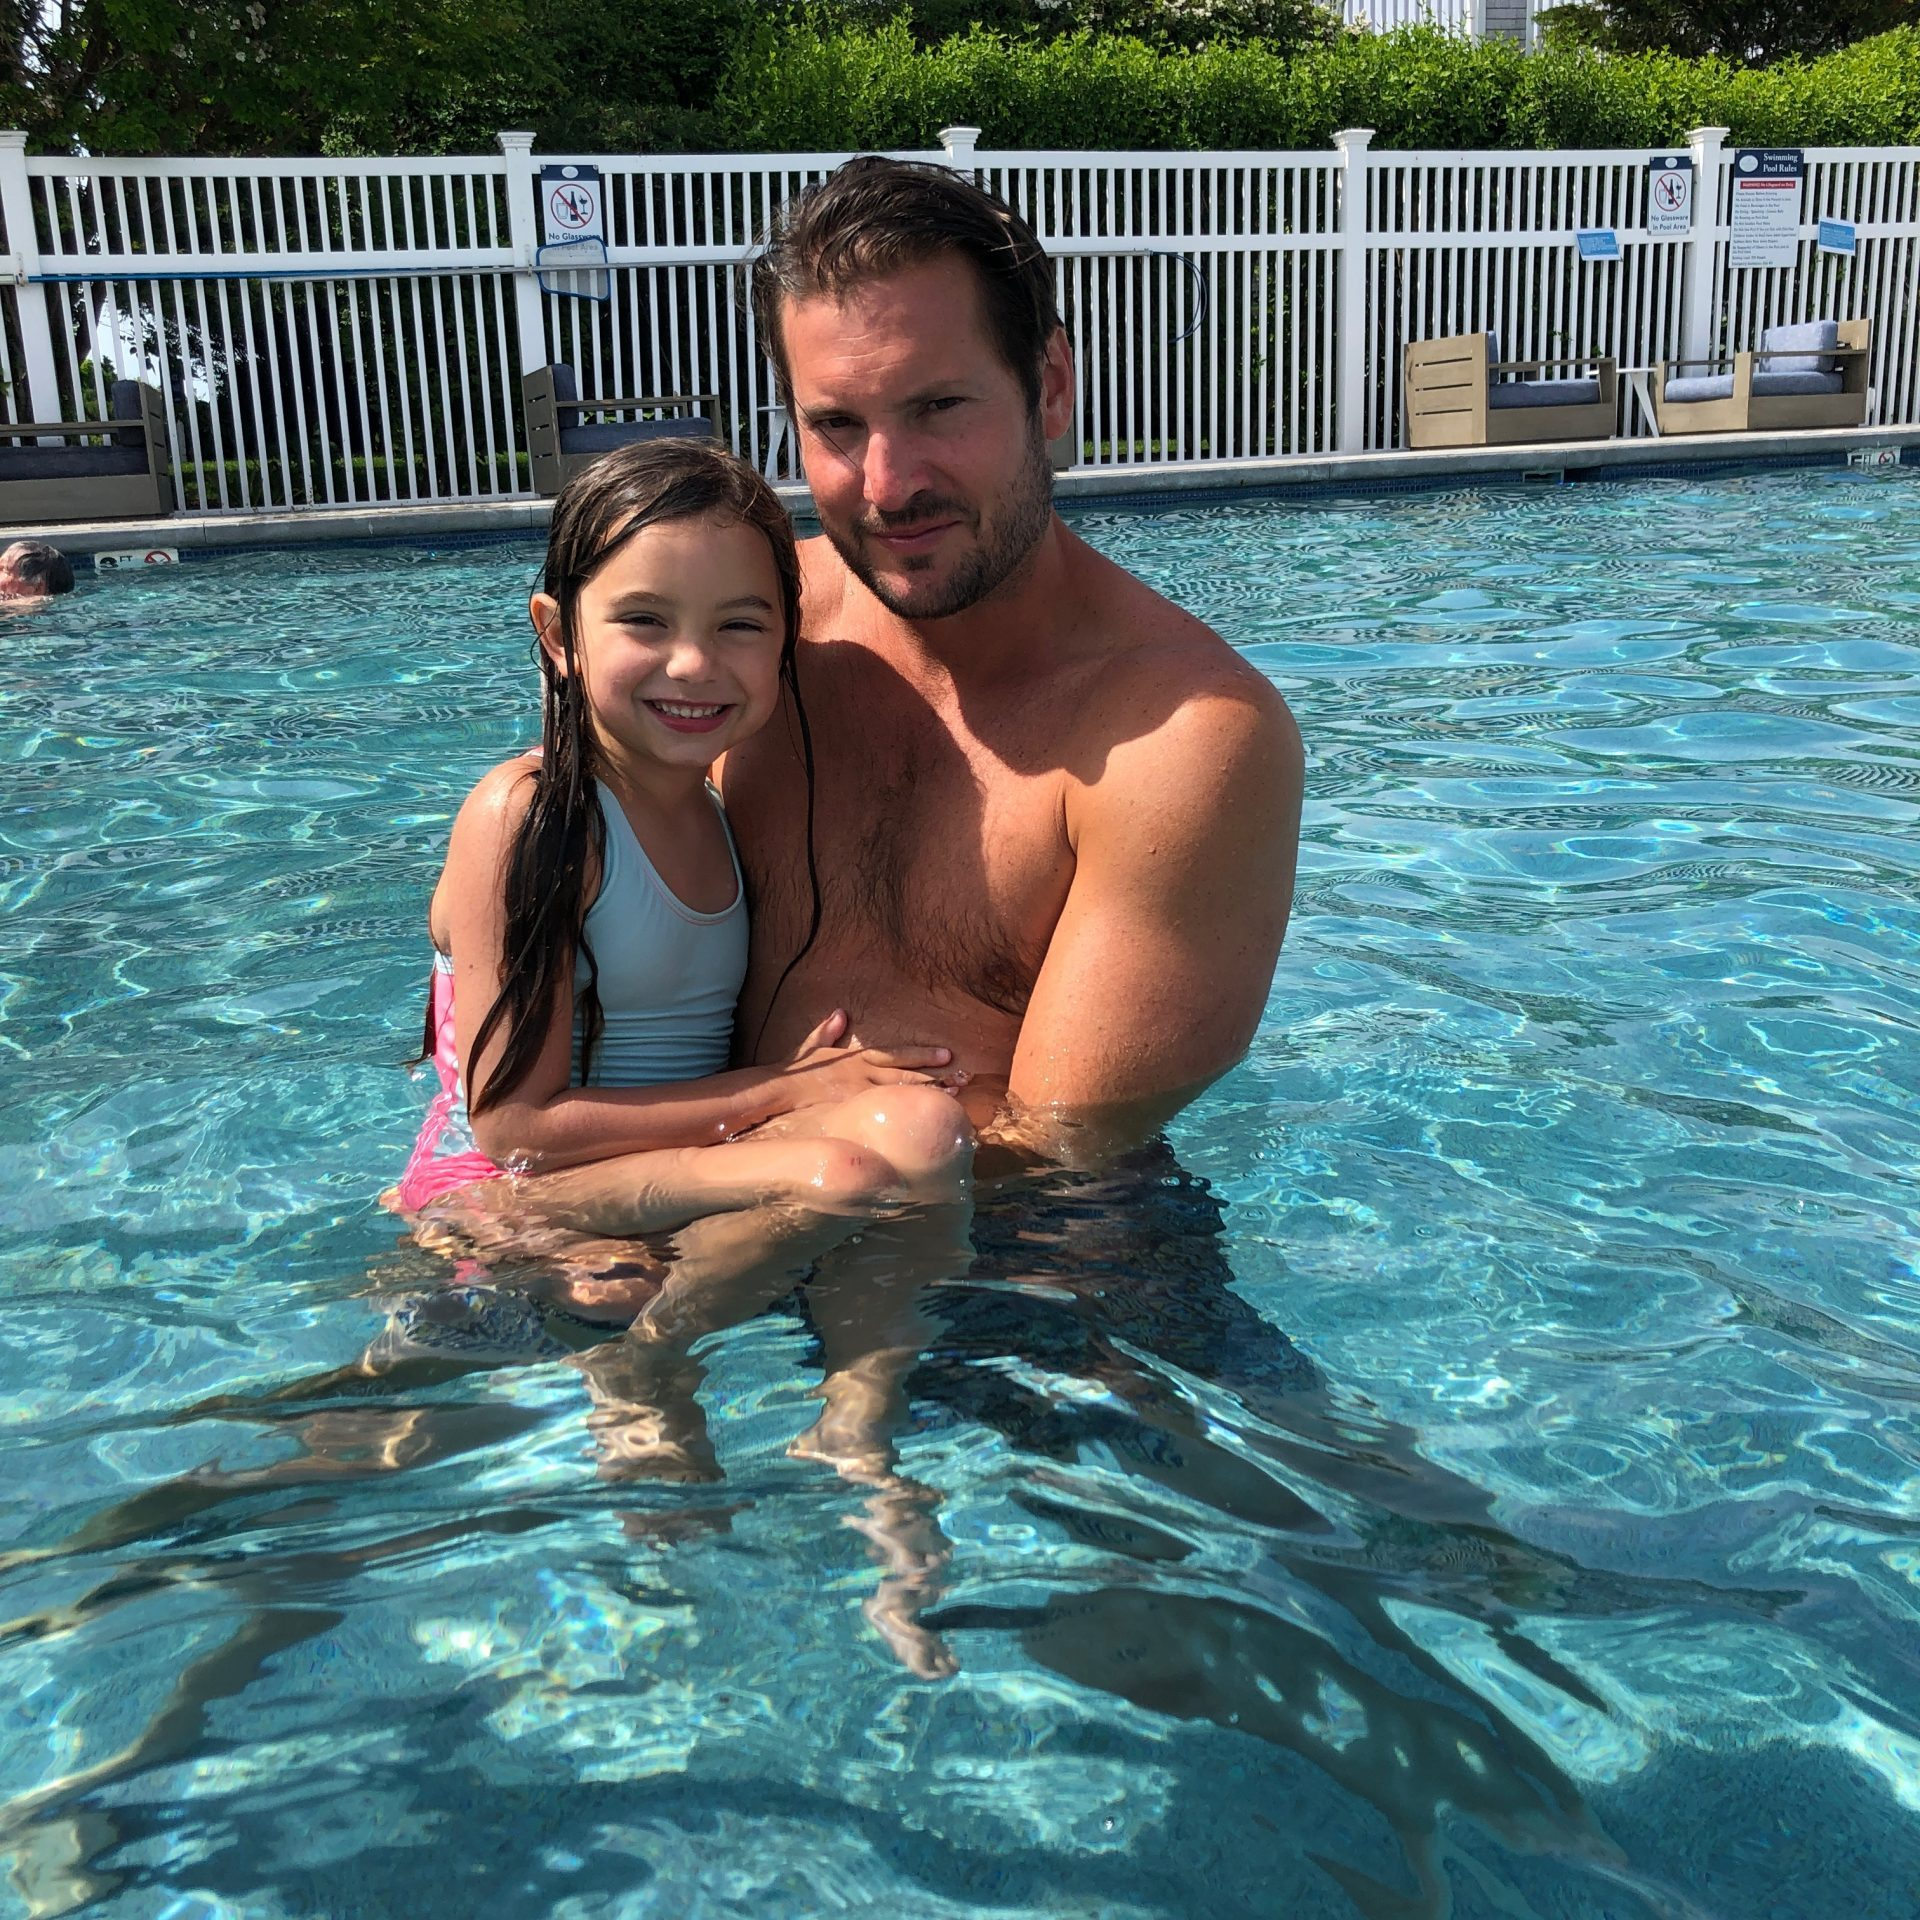 Dad holding little girl in the pool